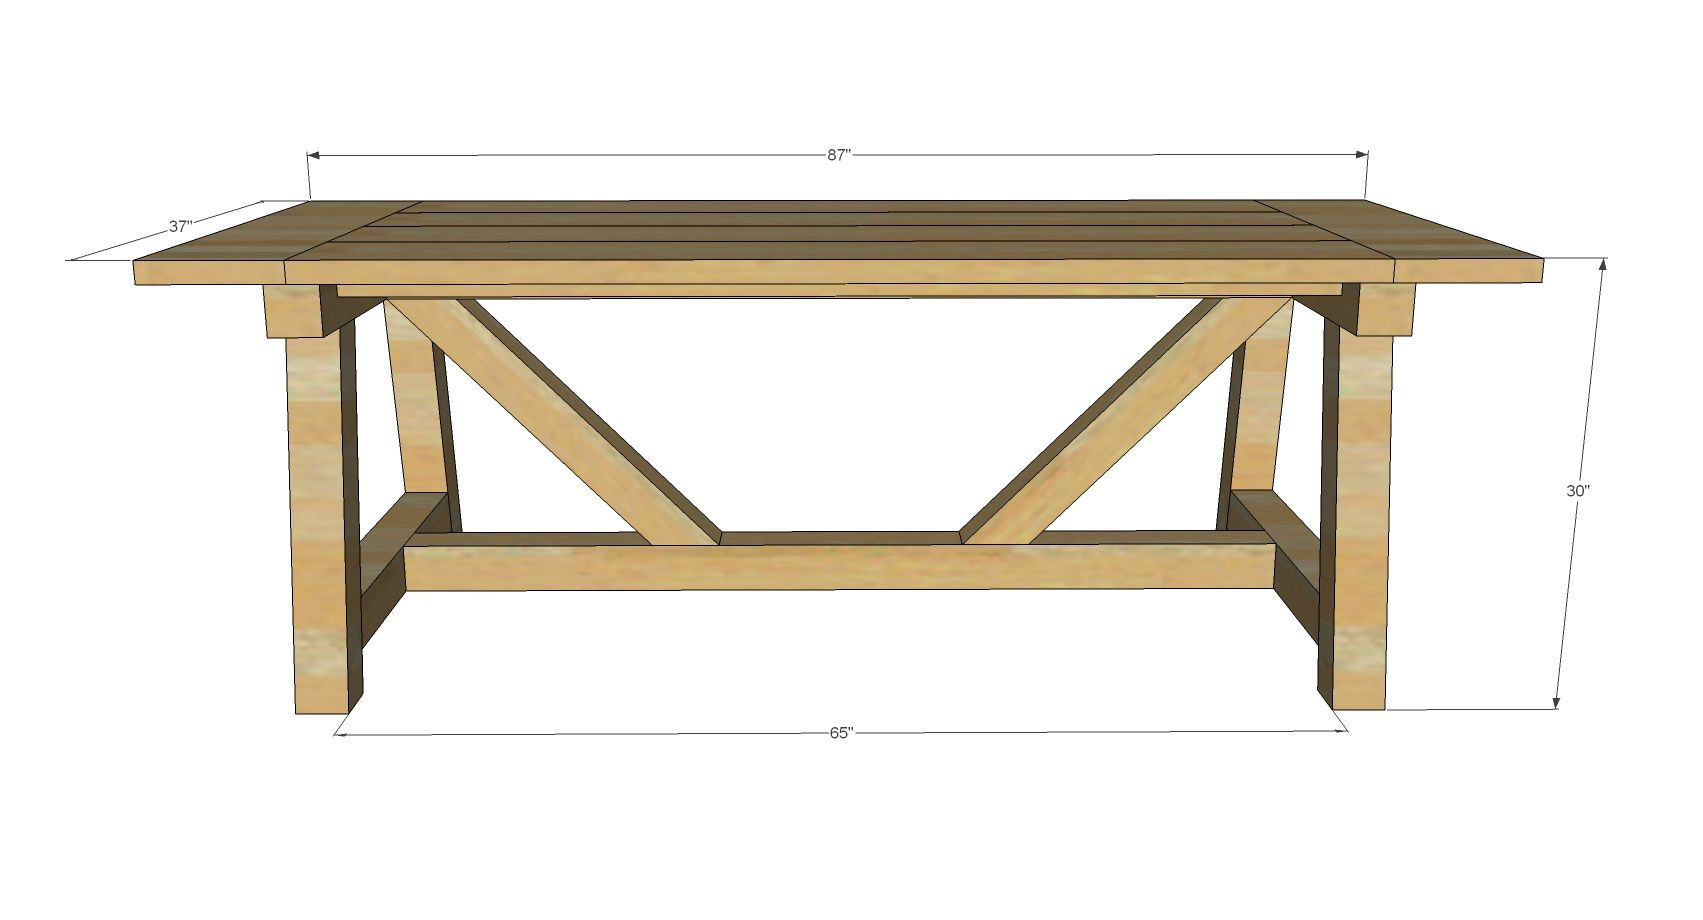 4x4 Truss Beam Table Farmhouse Table Plans Diy Farmhouse Table Farmhouse Dining Room Table